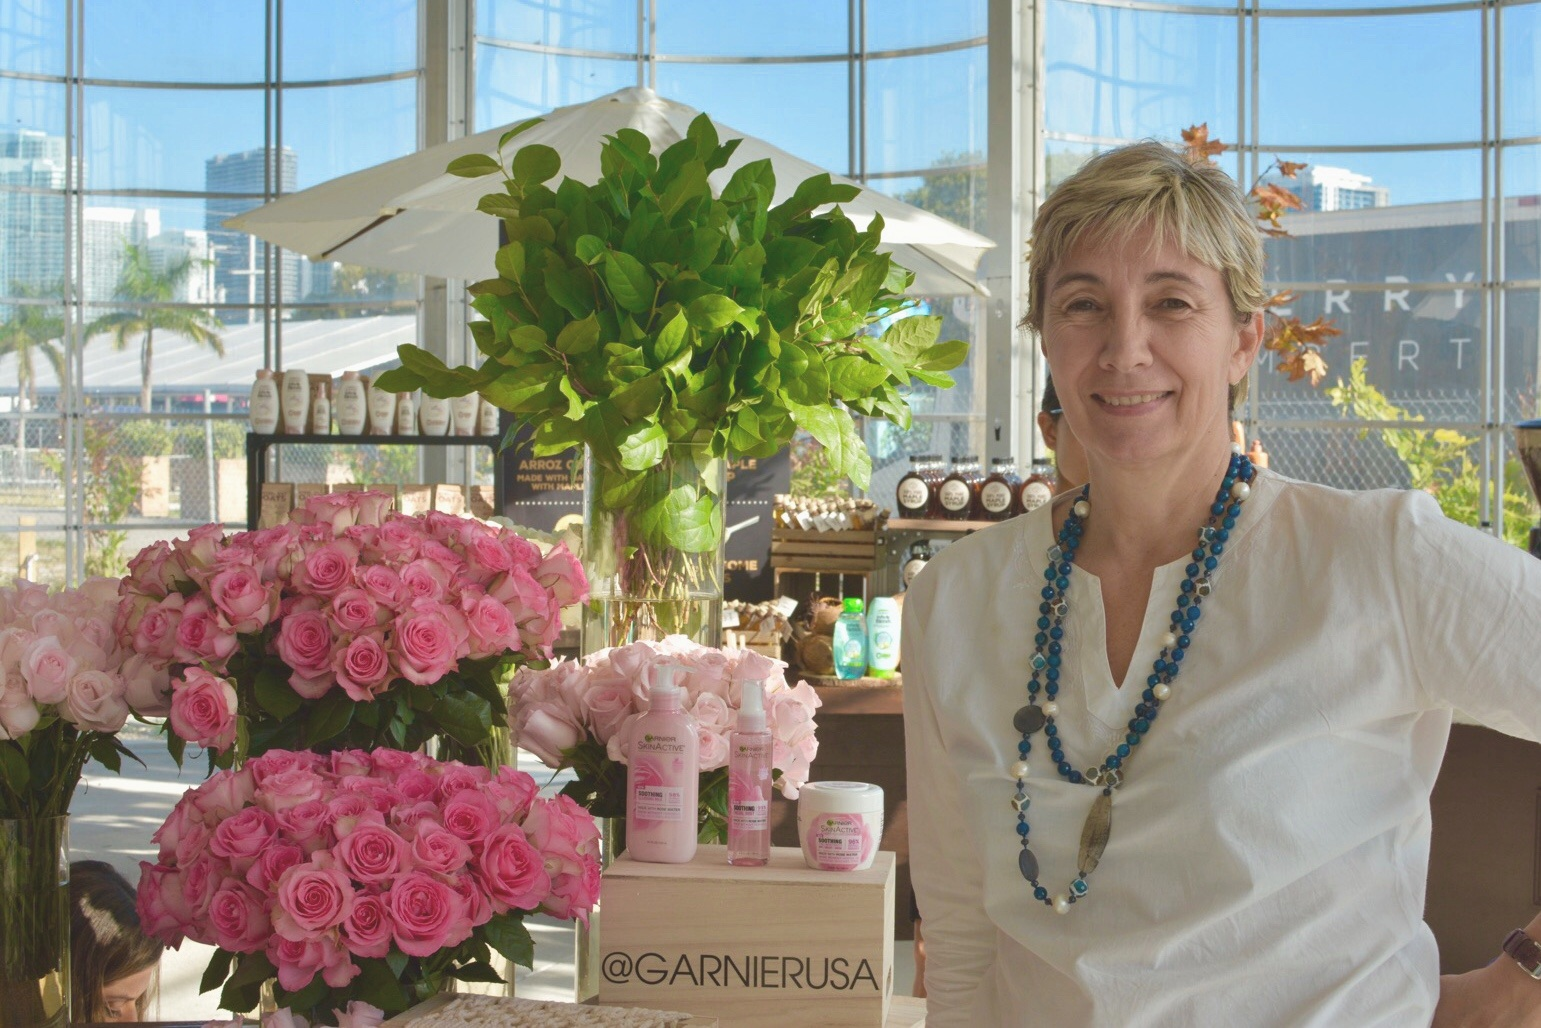 Elysabeth Saccone, Event Coordinator for Thierry Isambert Culinary & Event Design